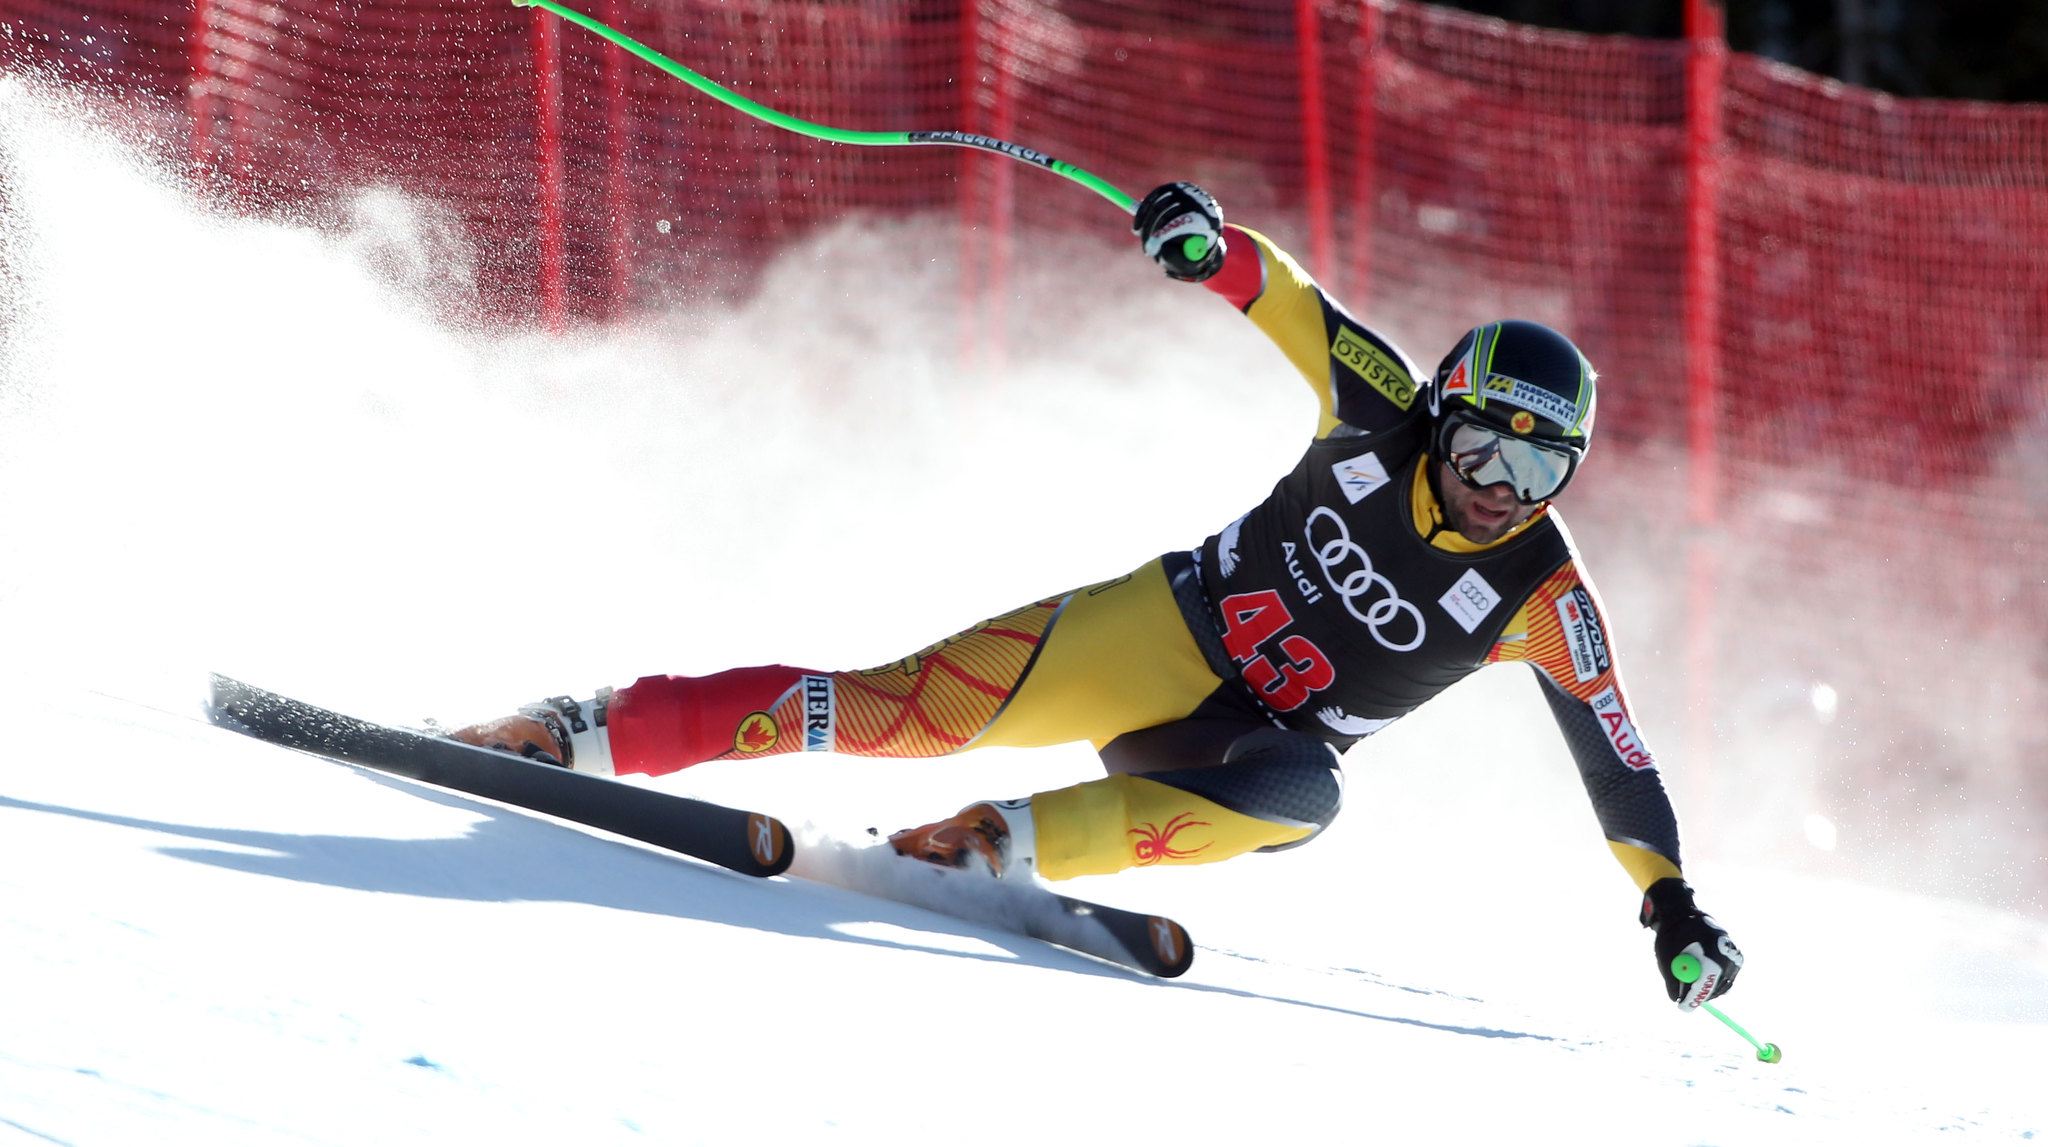 Manuel Osborne-Paradis during men's downhill training in Beaver Creek.